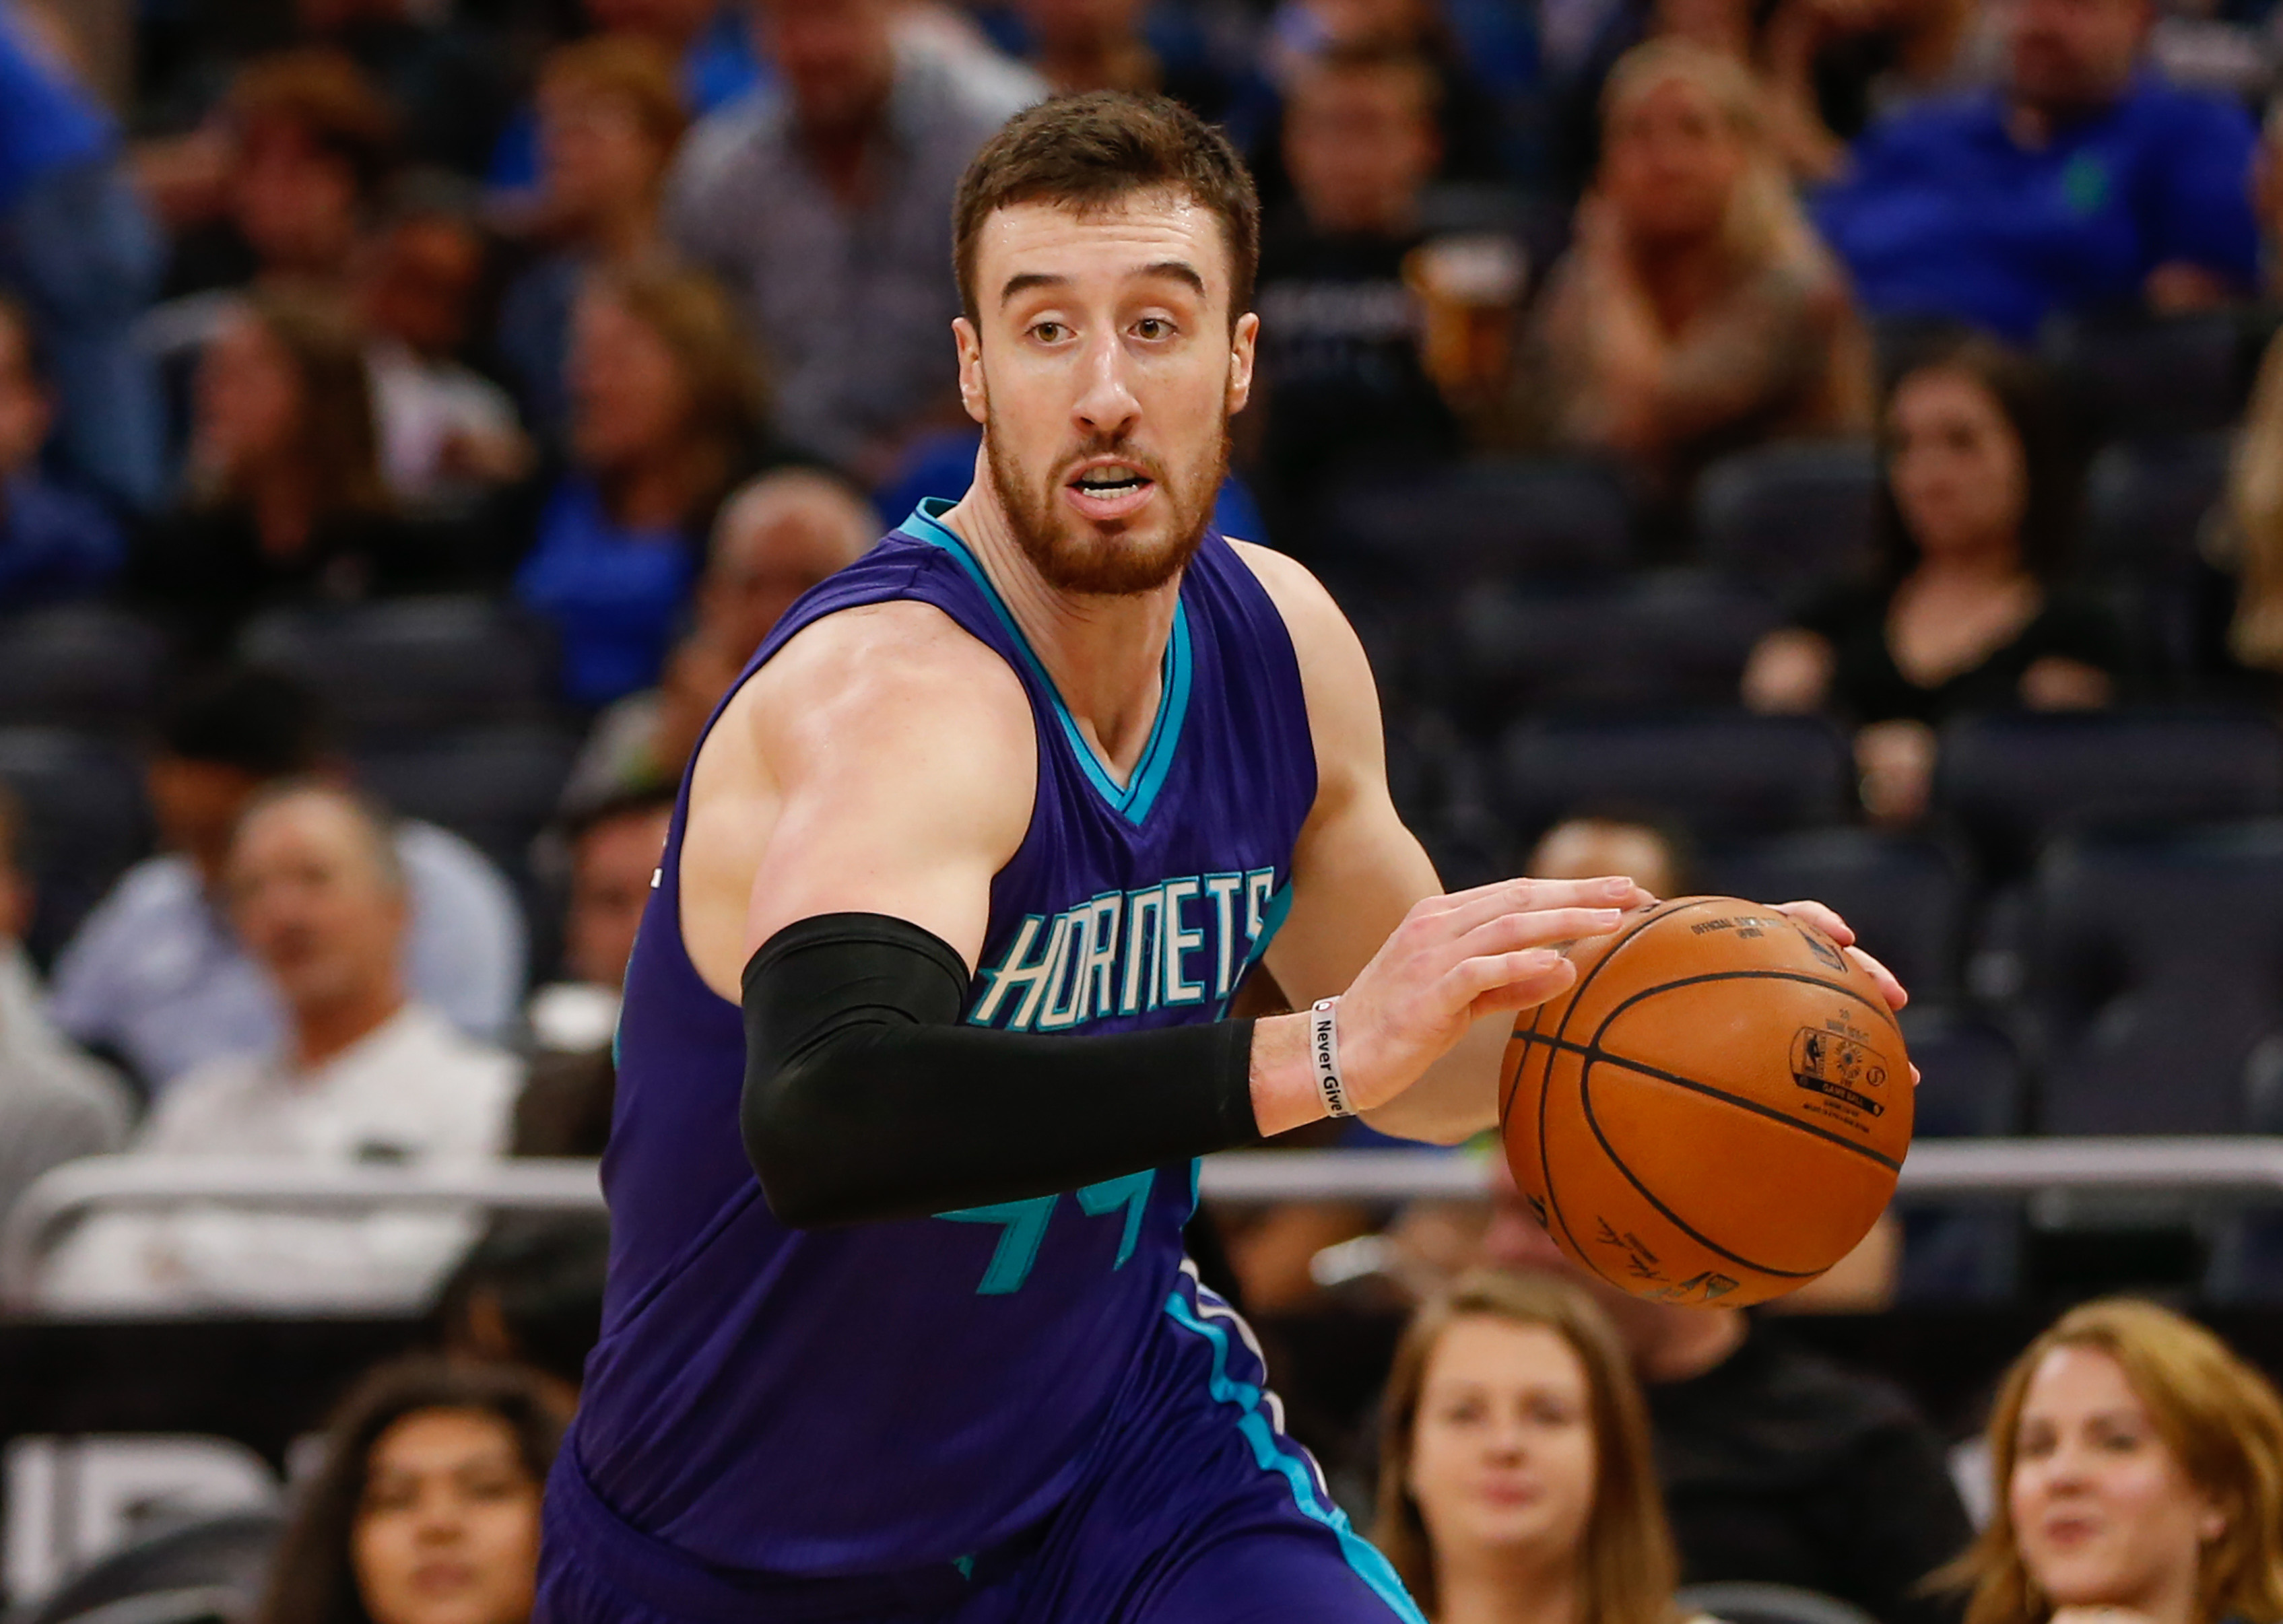 Frank Kaminsky has a Game of Thrones toilet decal in his bathroom